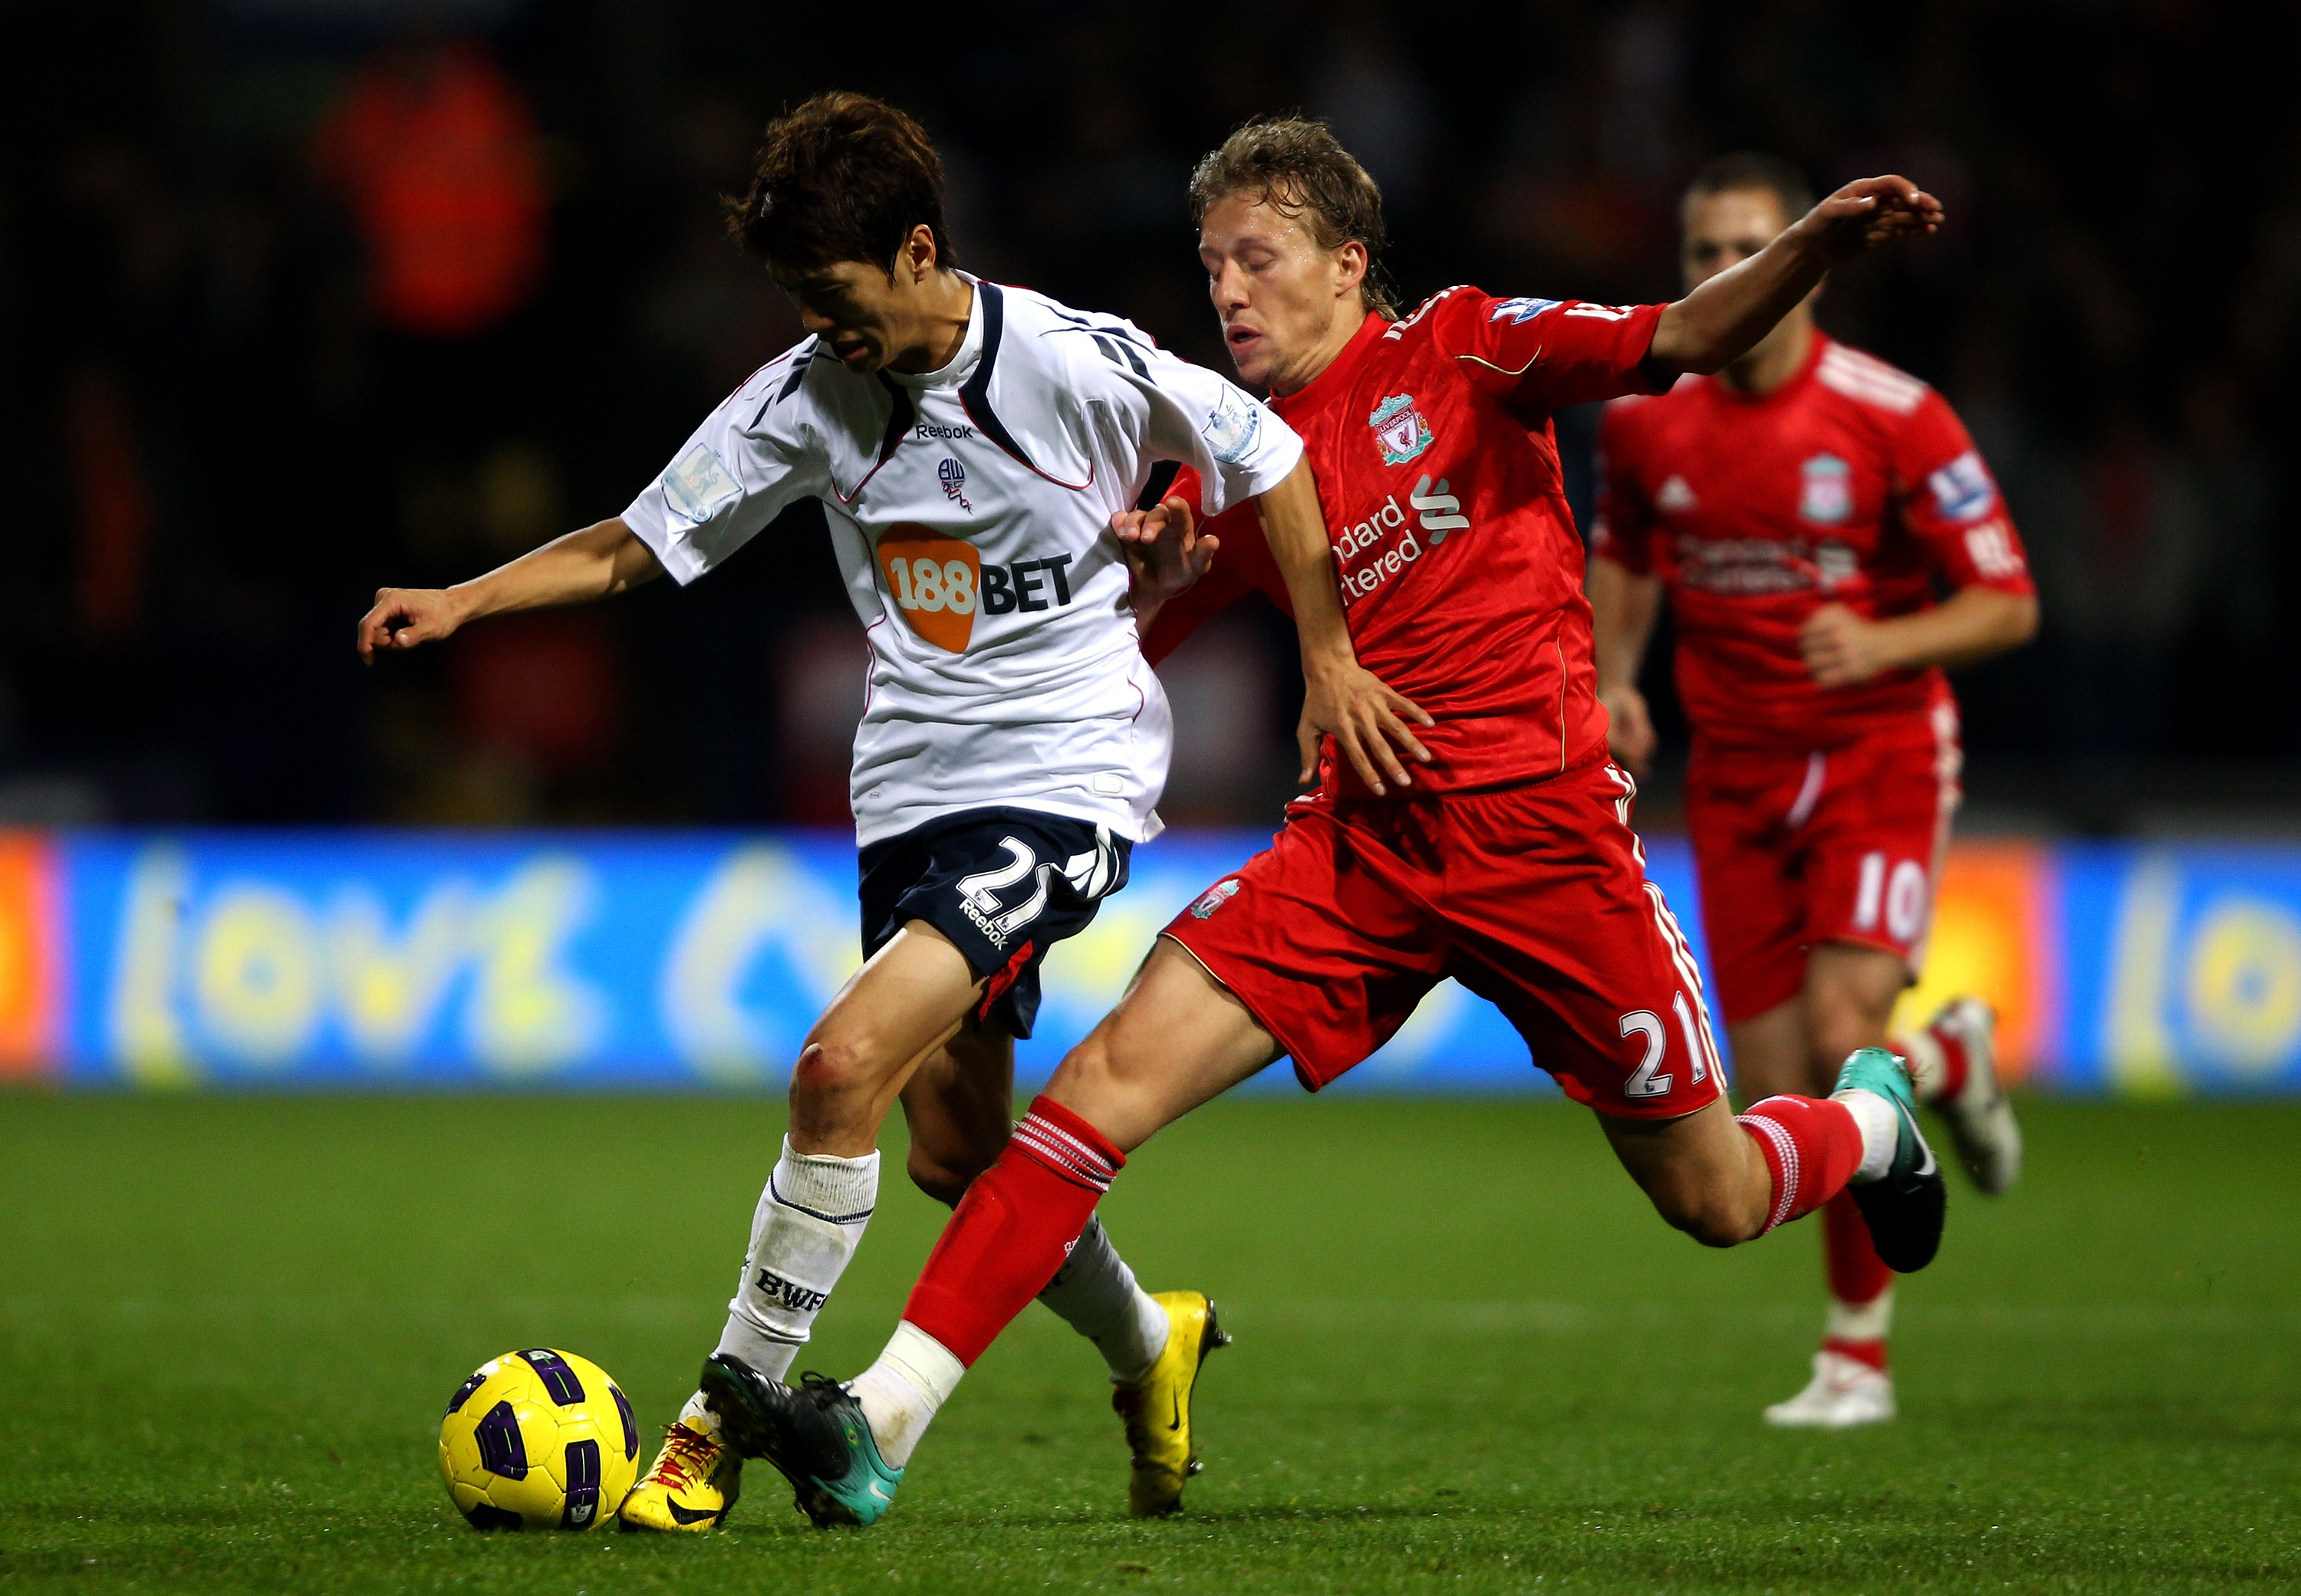 BOLTON, ENGLAND - OCTOBER 31:  Lucas of Liverpool tussles for posession with Chung Yong Lee of Bolton Wanderers during the Barclays Premier League match between Bolton Wanderers and Liverpool at the Reebok Stadium on October 31, 2010 in Bolton, England.